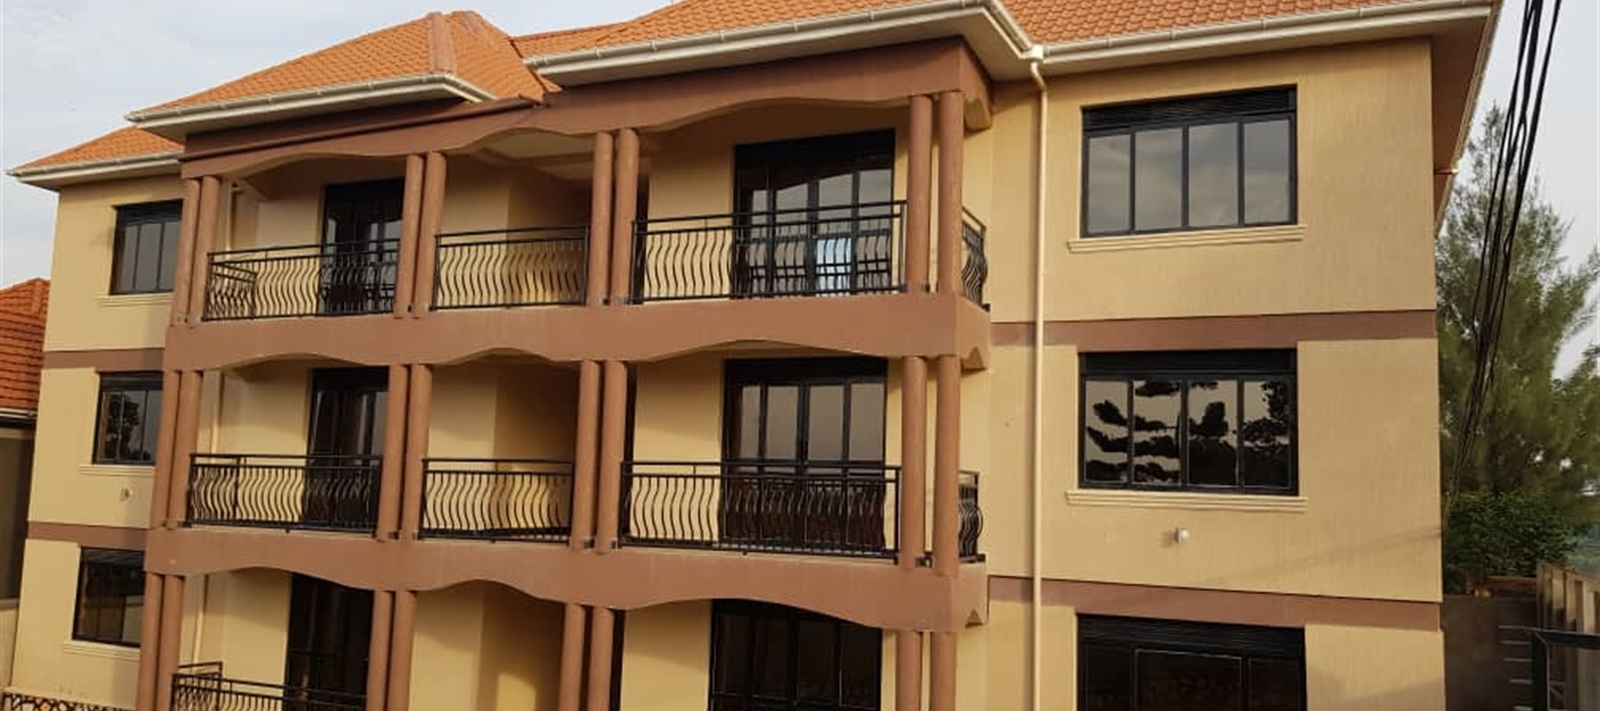 Apartments for rent in Kitettika-Gayaza road.